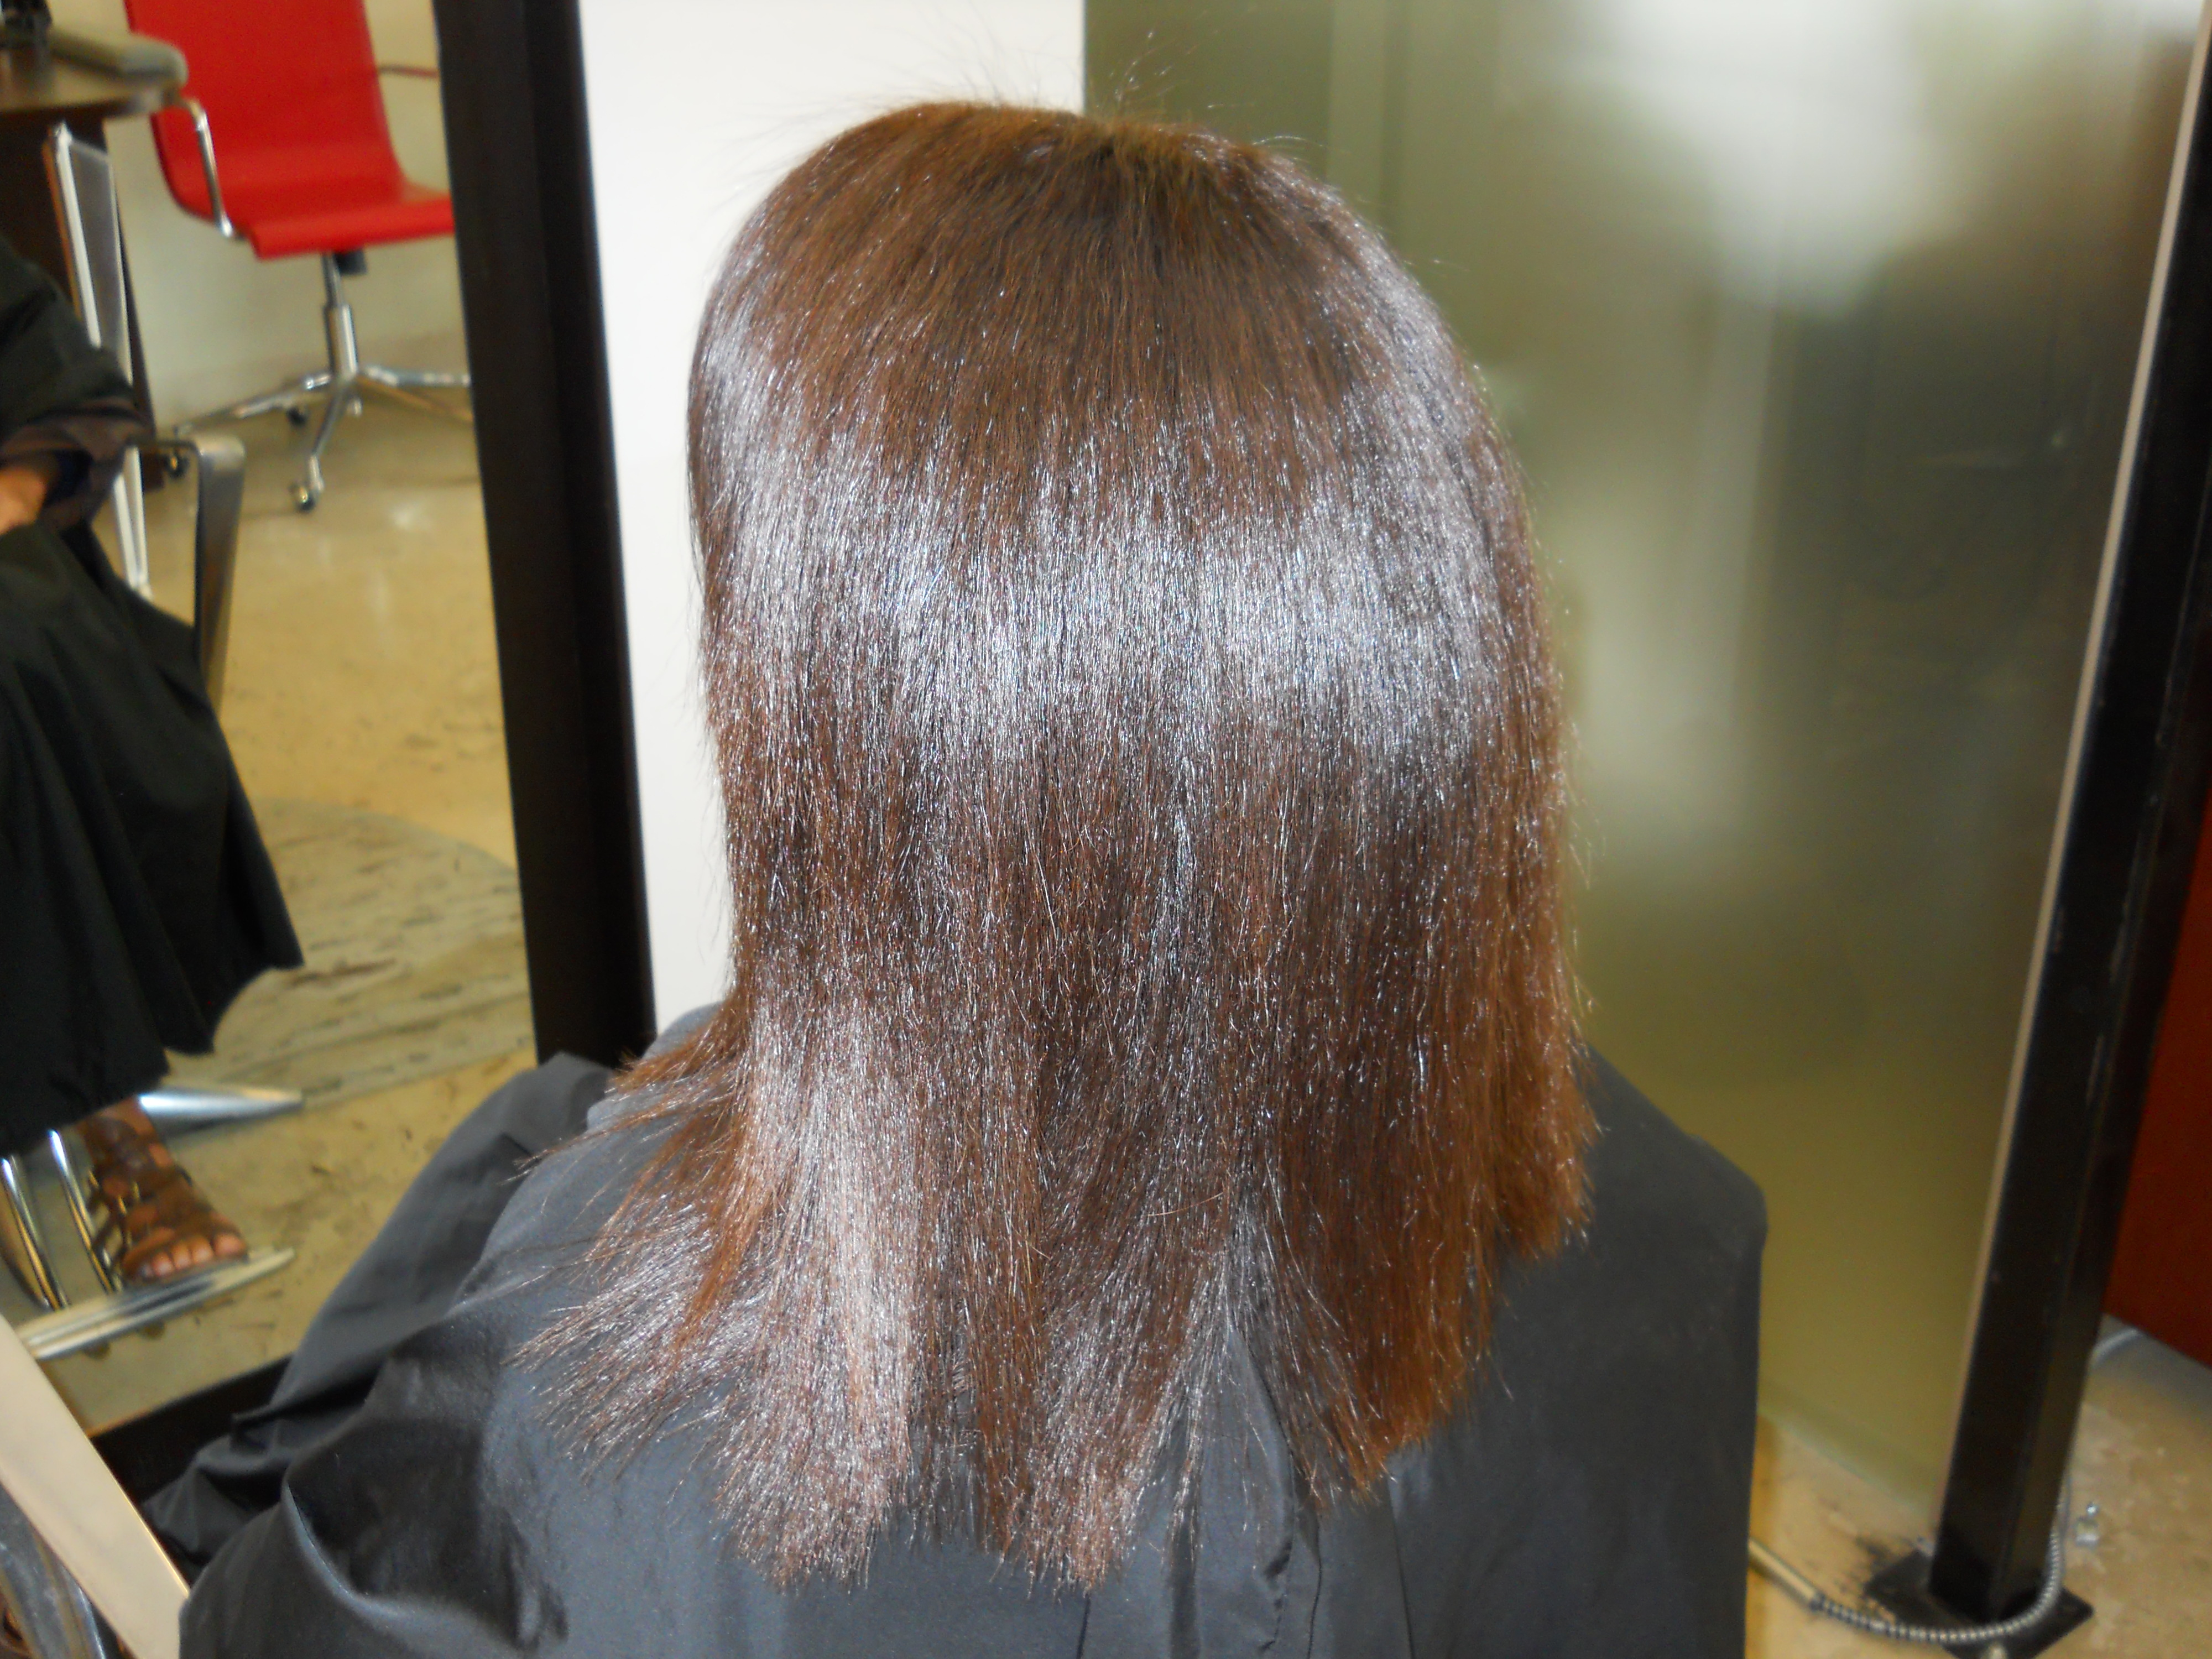 Straight perm didnt work - After The Paul Brown Straight Perm Treatment